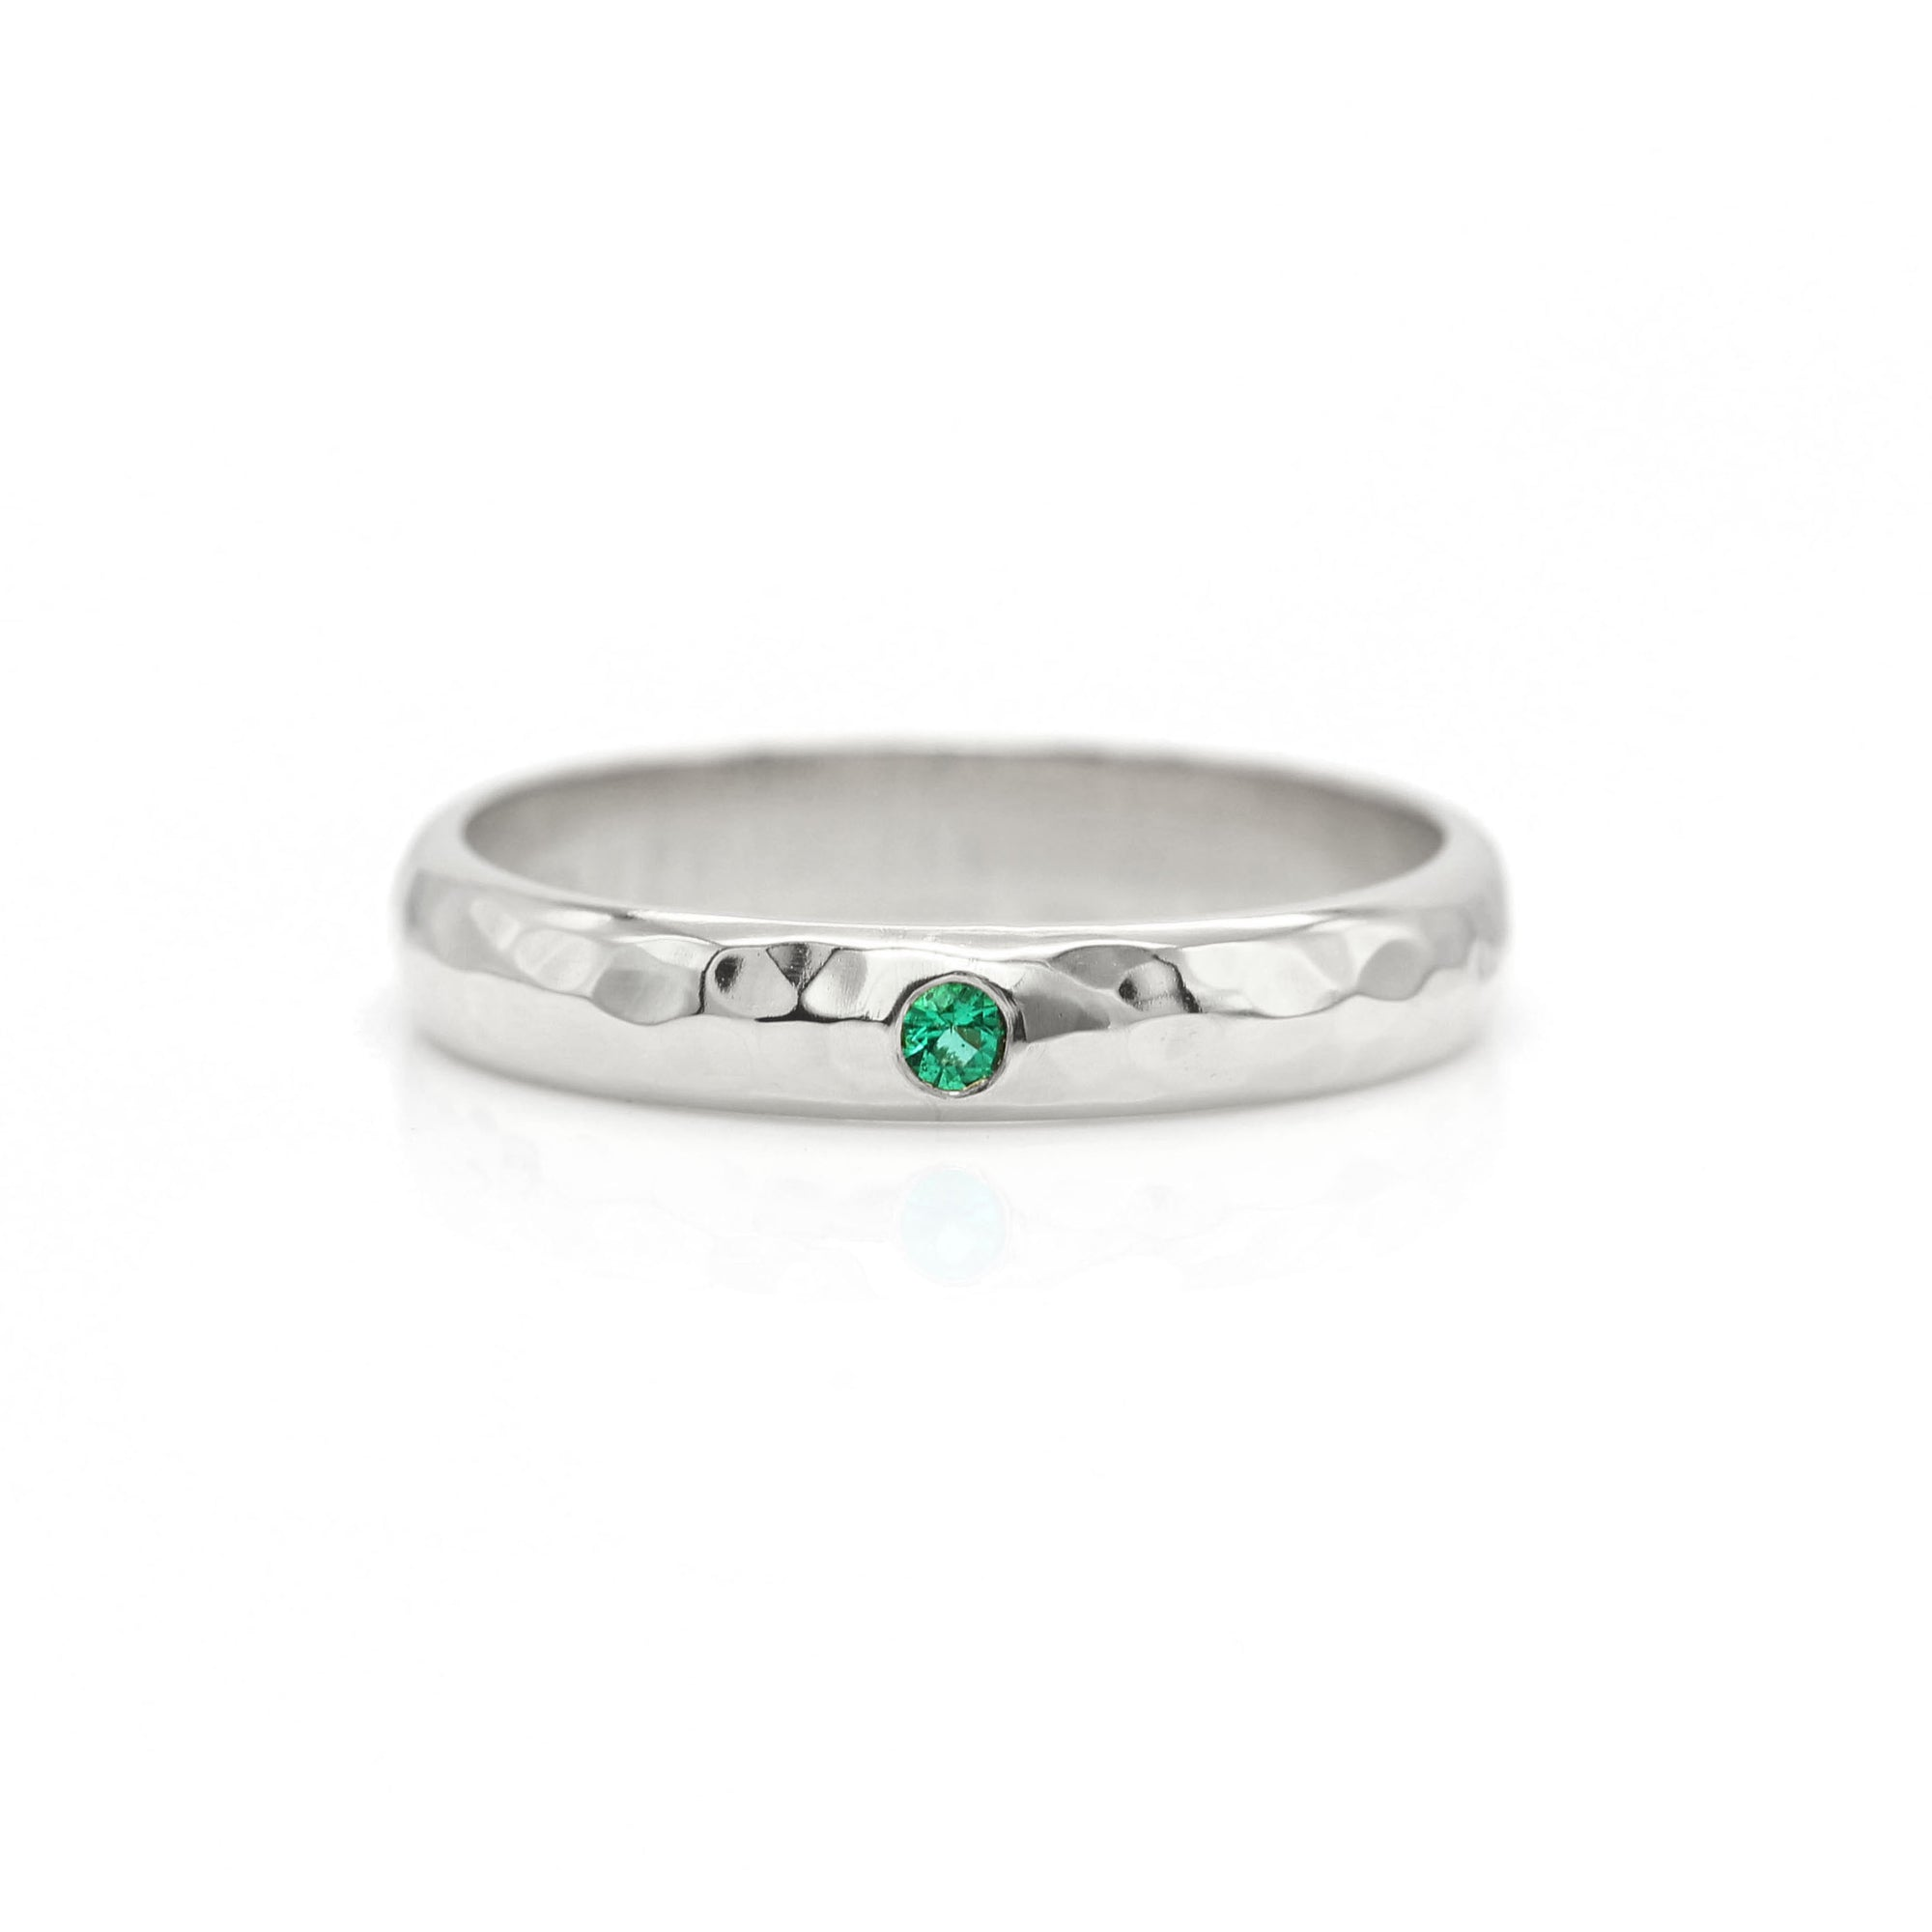 Emerald Hammered Ring Band - Palladium White Gold